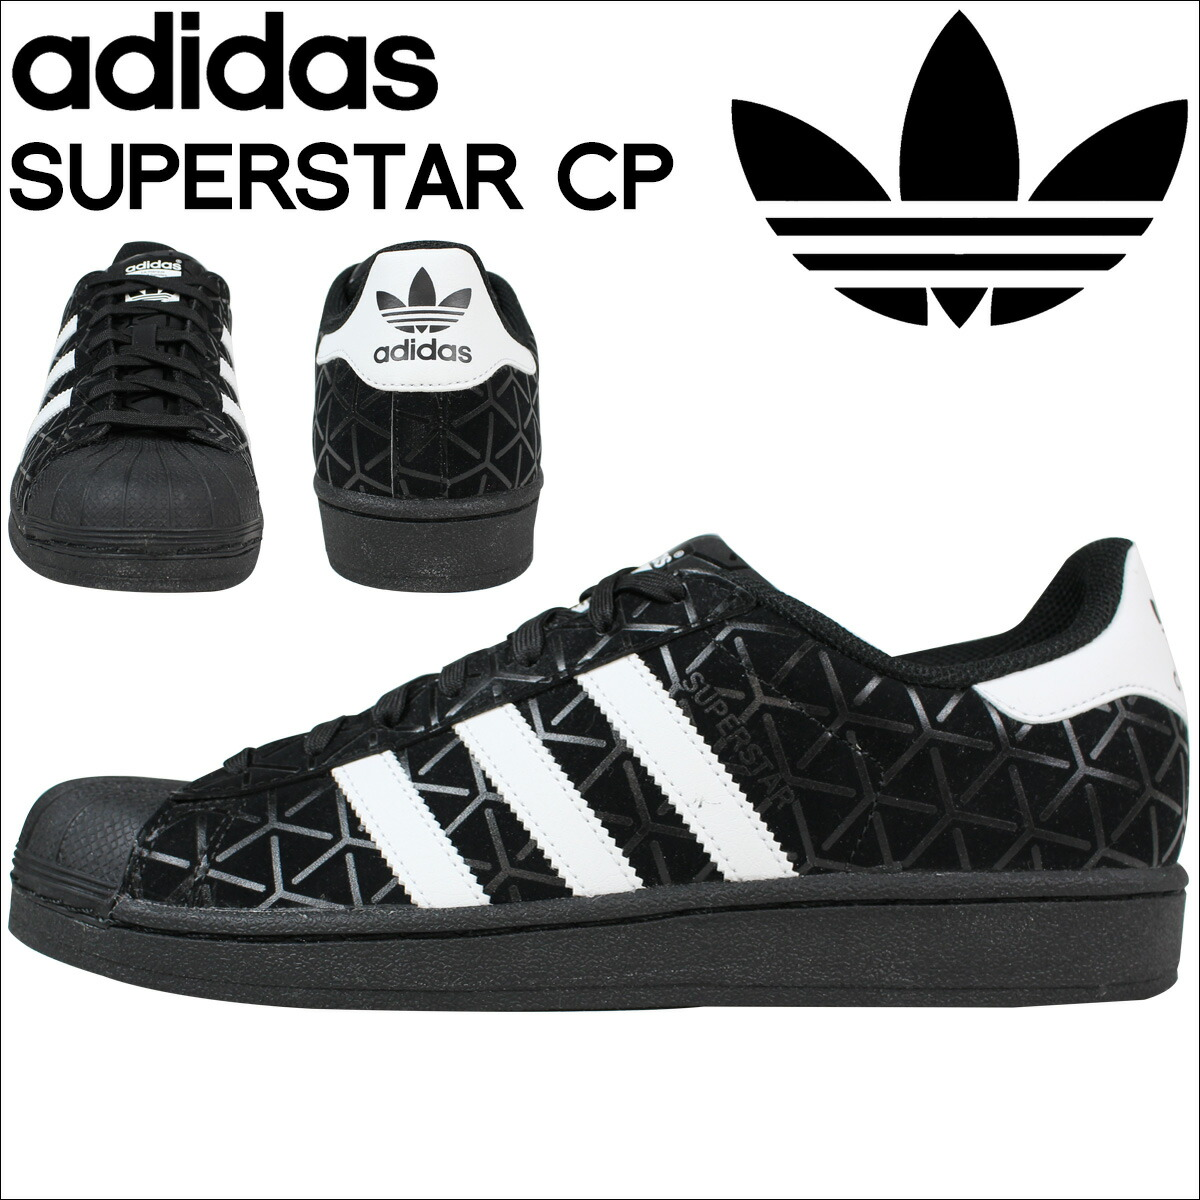 adidas Superstar UP Supersport